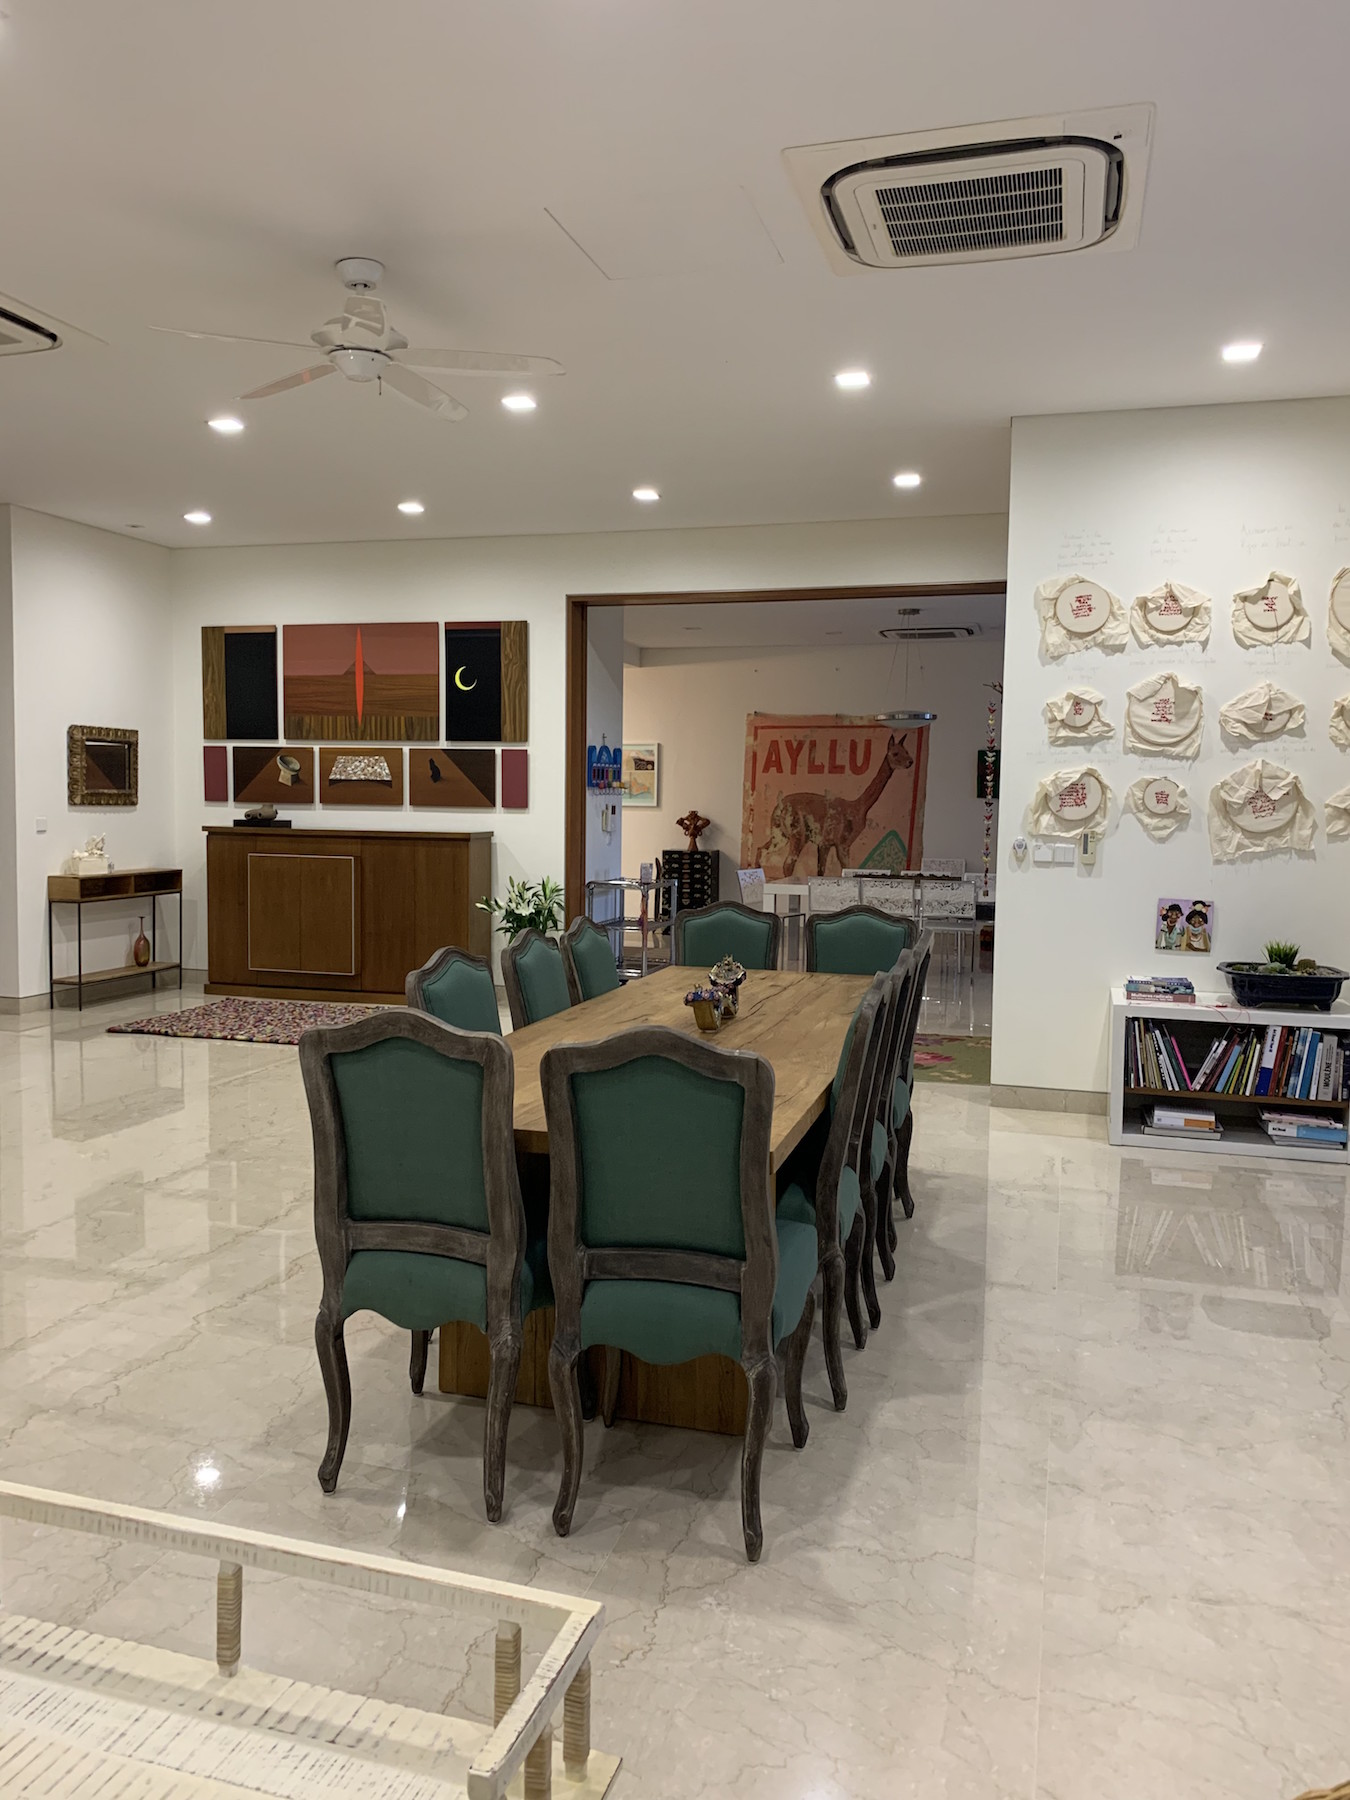 The living room of the Nordenstahl family home in Singapore. On the left, artworks by Jordan Maclachlan, Hulda Hhuzman and Gala Porras-Kim. In the middle, a large painting by Jose Carlos Martinat. On the right wall, an installation work by Tania Candiani. Courtesy of Benedicta M. Badia de Nordenstahl.